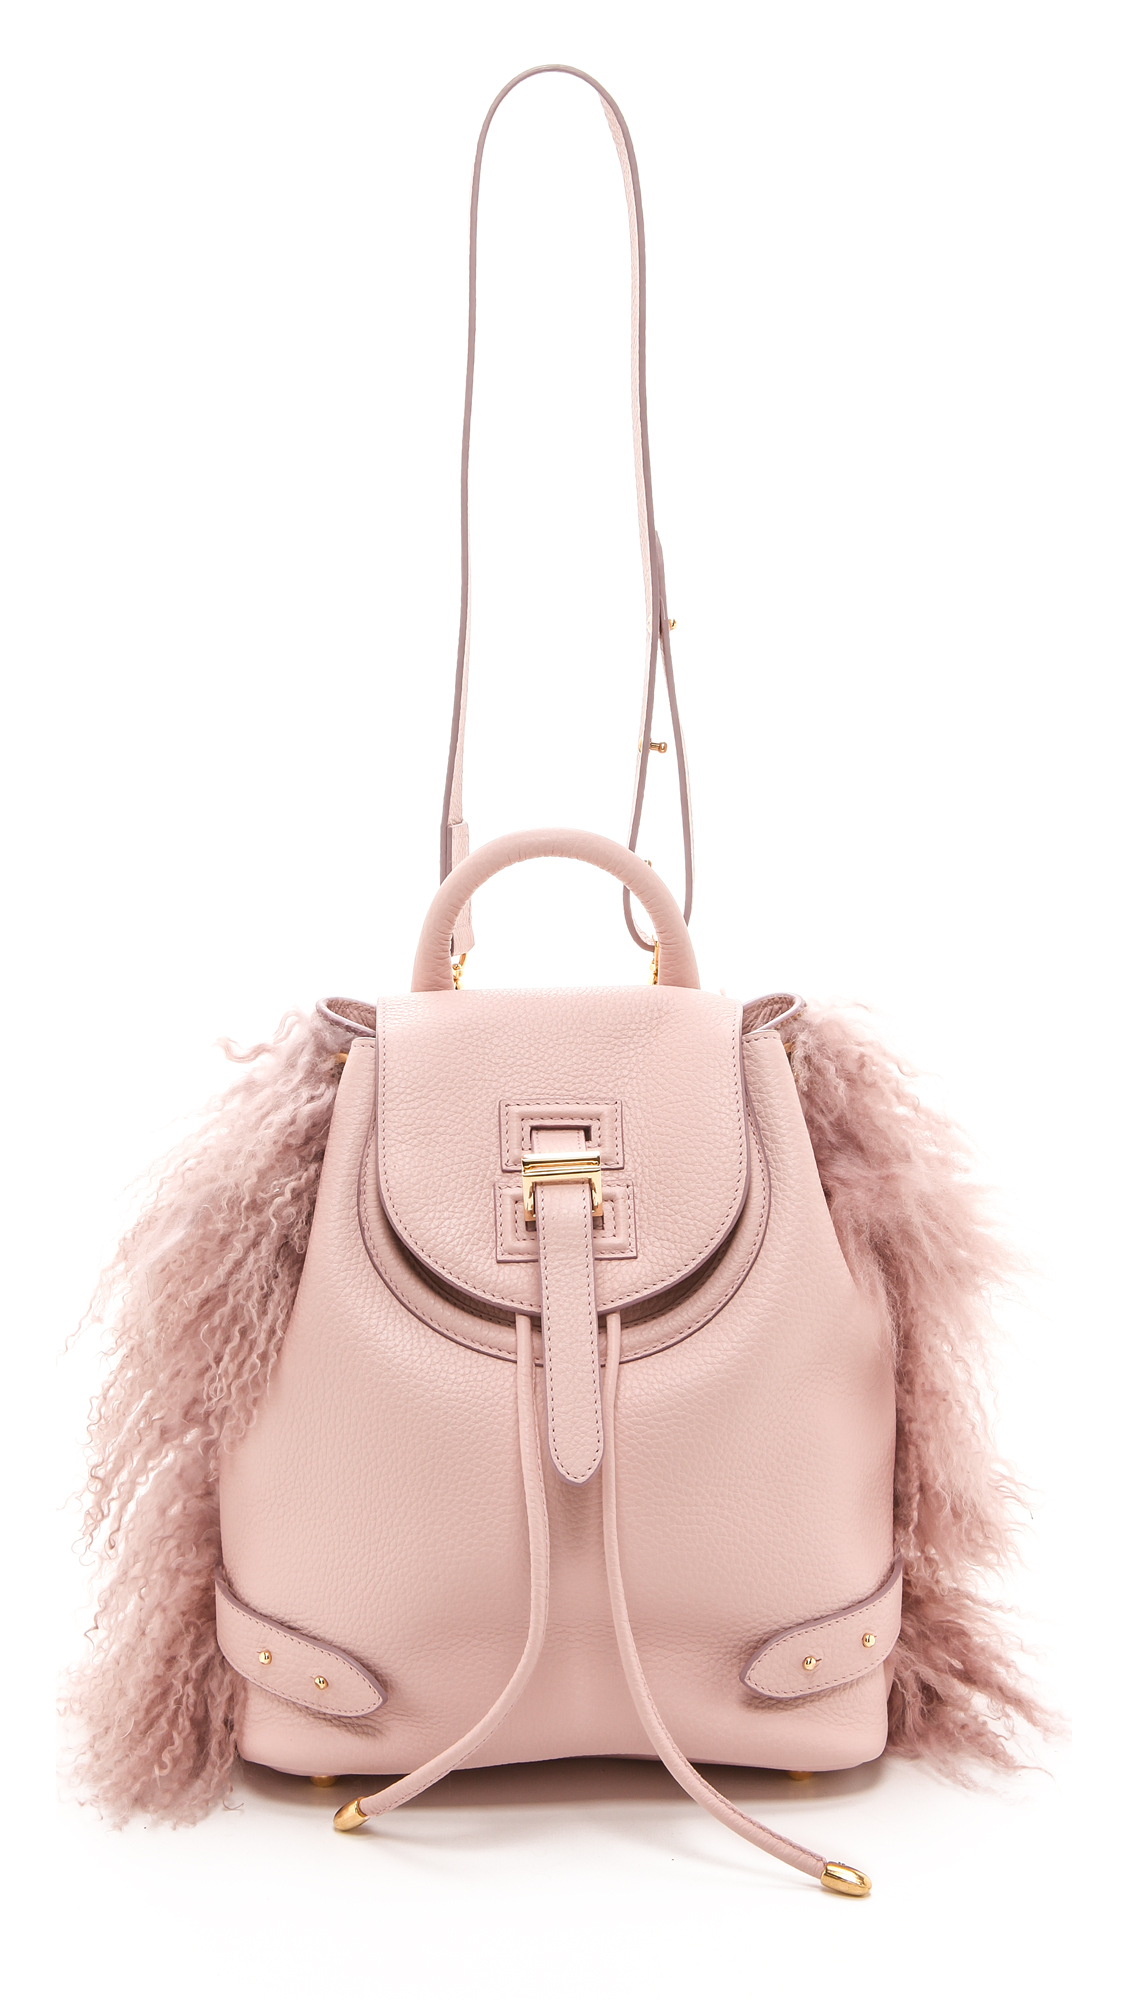 Meli Melo Mini Backpack with Lux Shearling Dusty Pink in Pink - Lyst b4d76287b151a